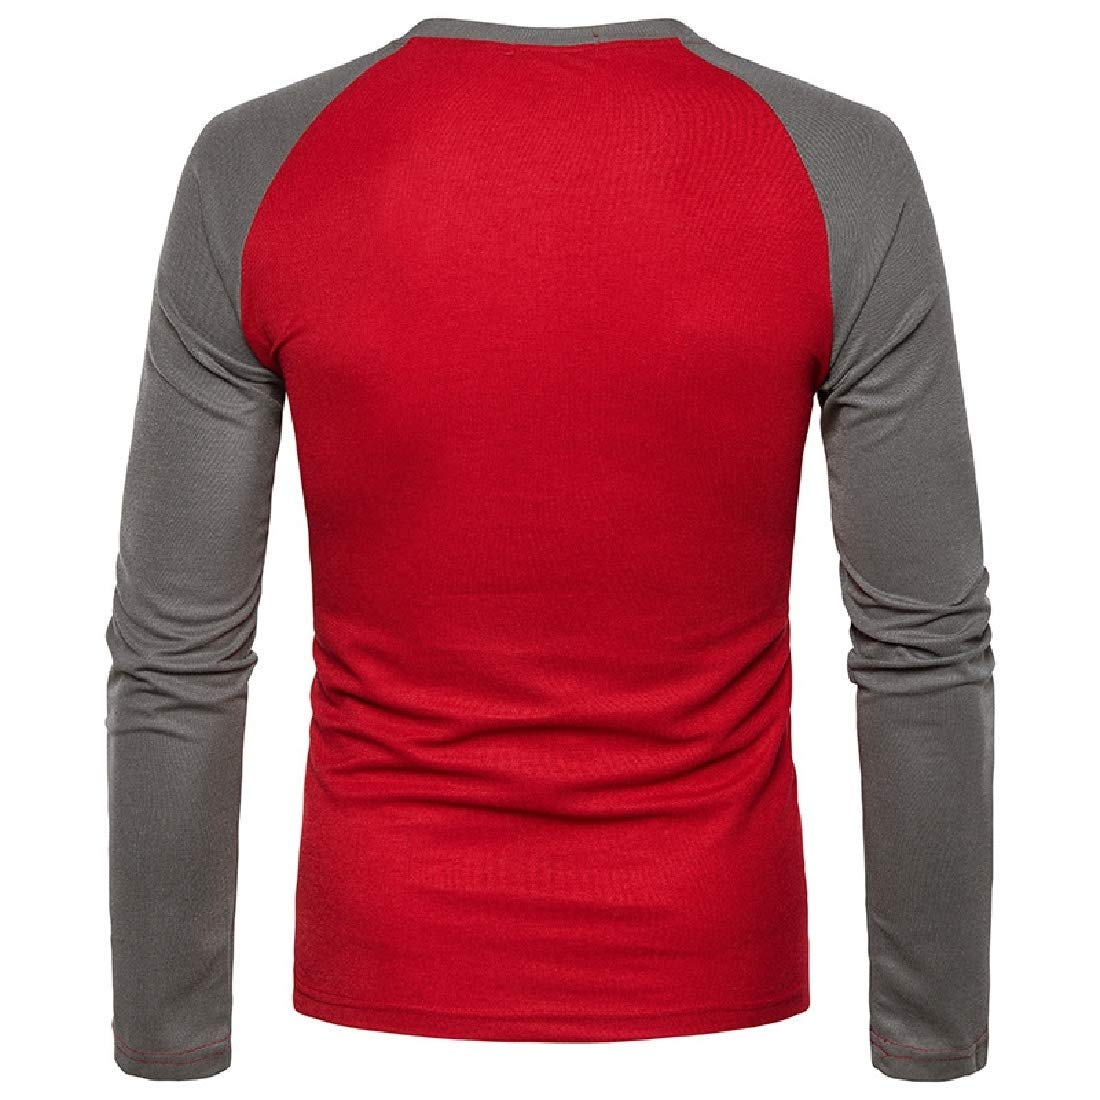 Zimaes-Men Spell Color Long Sleeve T-Shirts Polo Shirt Classic Tops